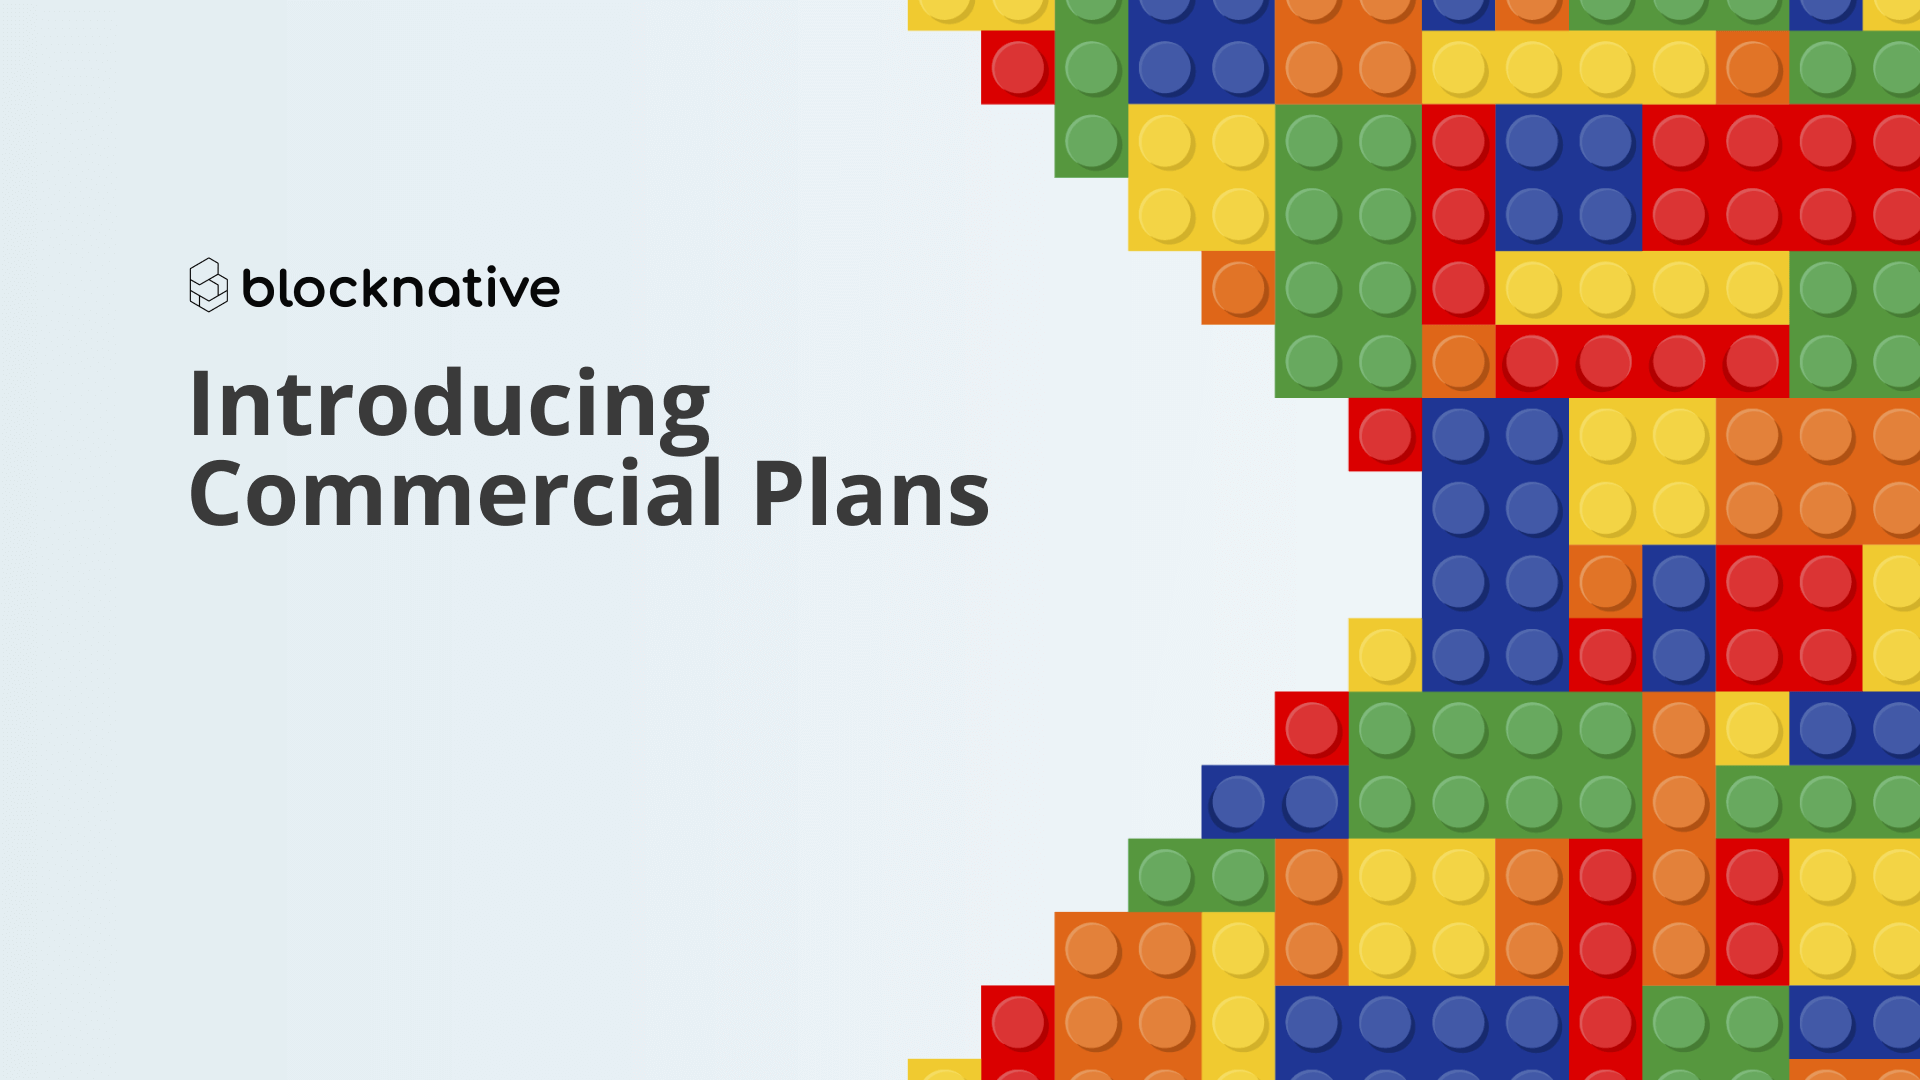 introducing-blocknative-commercial-plans